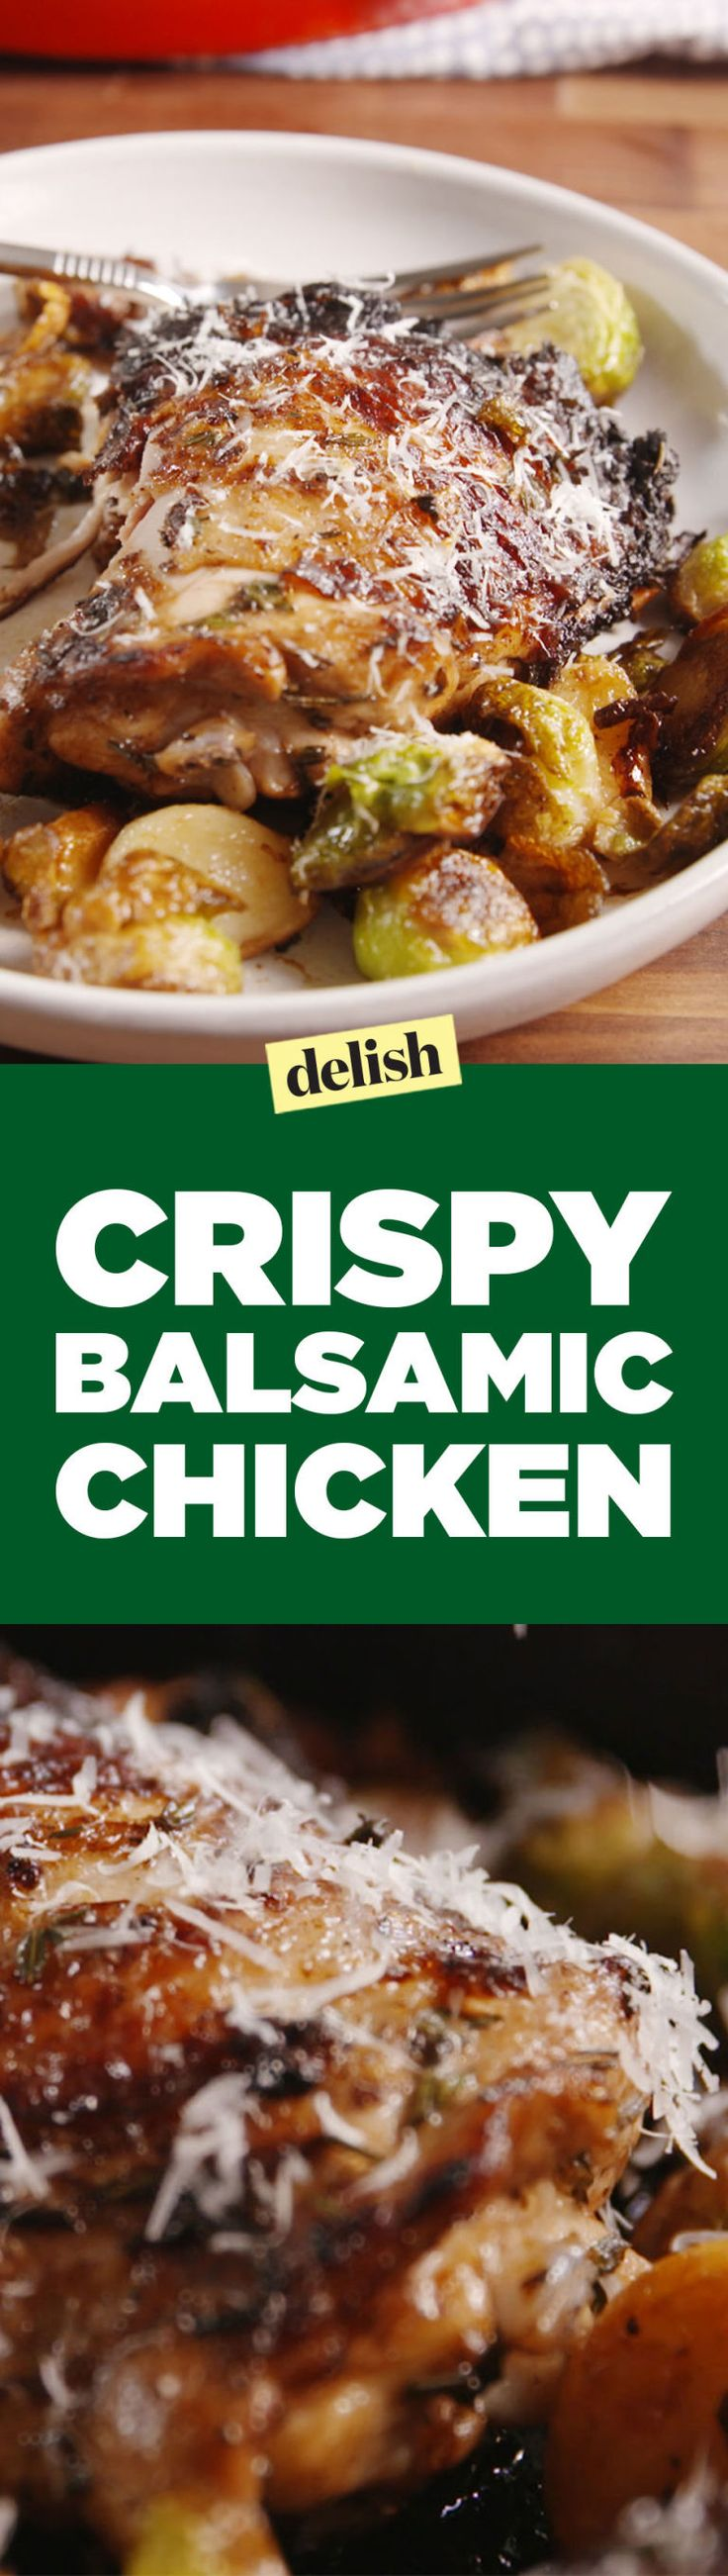 Best 25 balsamic chicken recipes ideas on pinterest balsamic crispy balsamic chicken forumfinder Image collections